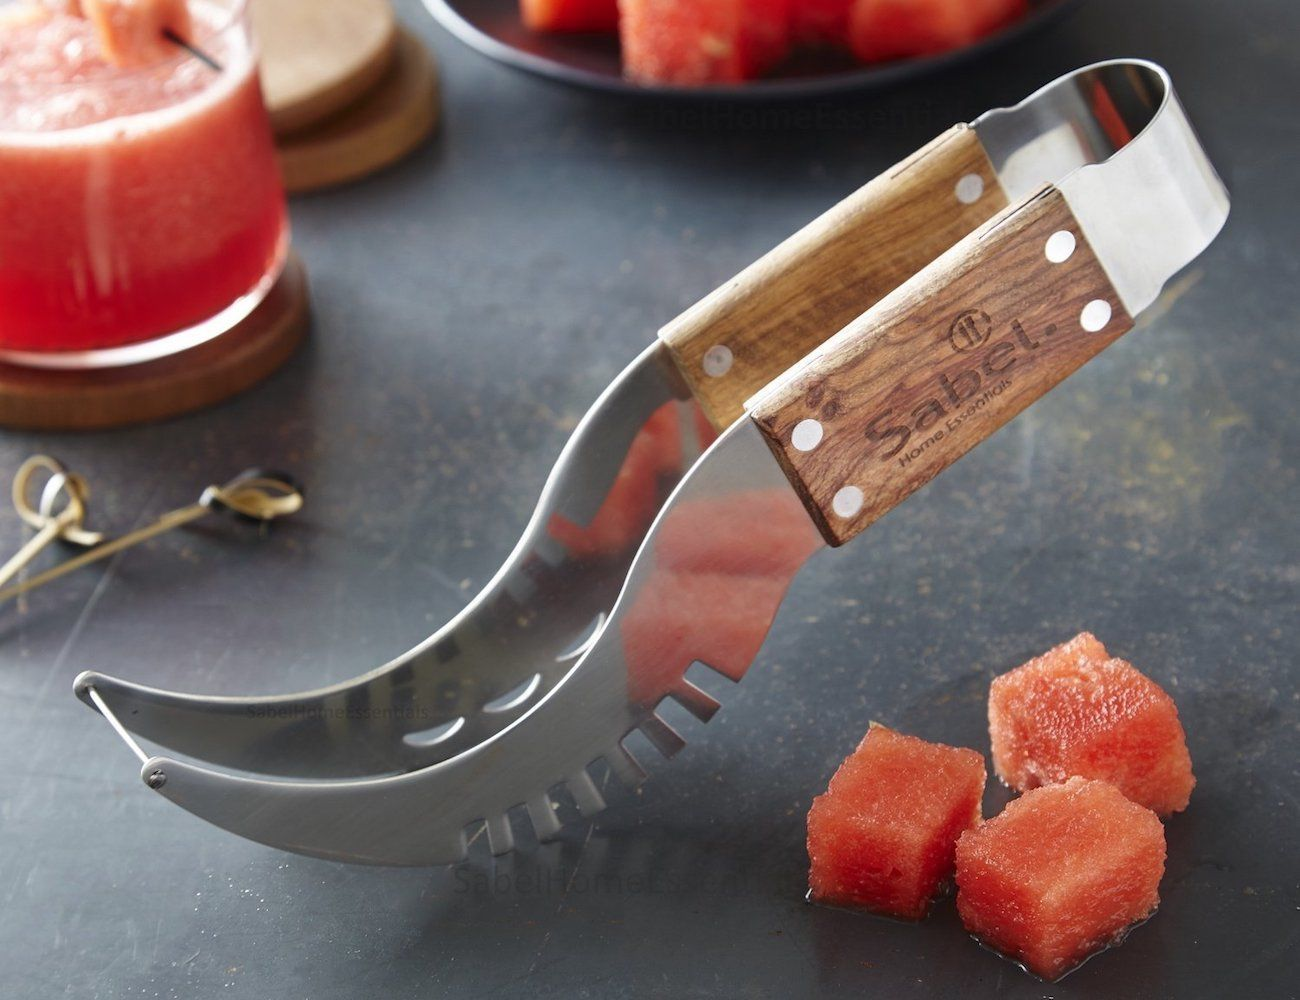 Sabel Wood Watermelon Slicer